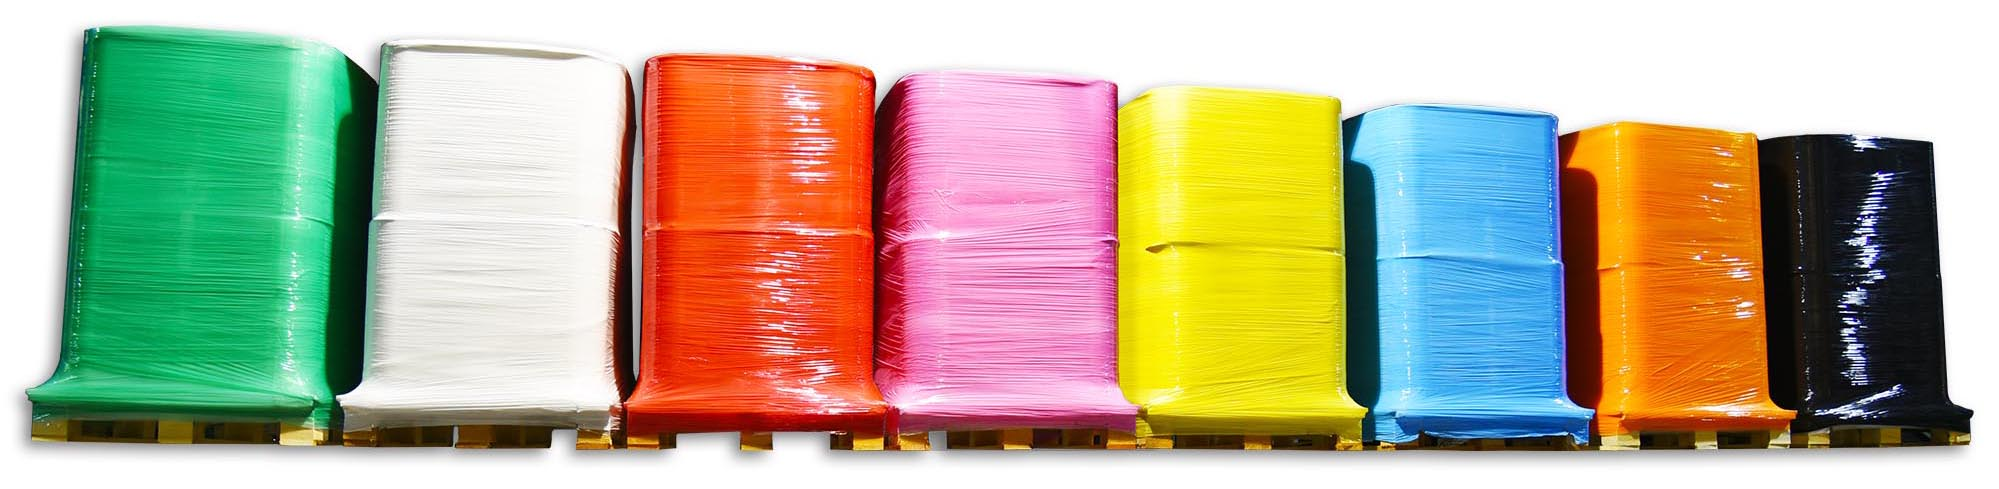 https://kingfisherpackaging.com/wp-content/uploads/2019/04/Coloured-Pallet-wrap-on-pallets-2-1.jpg